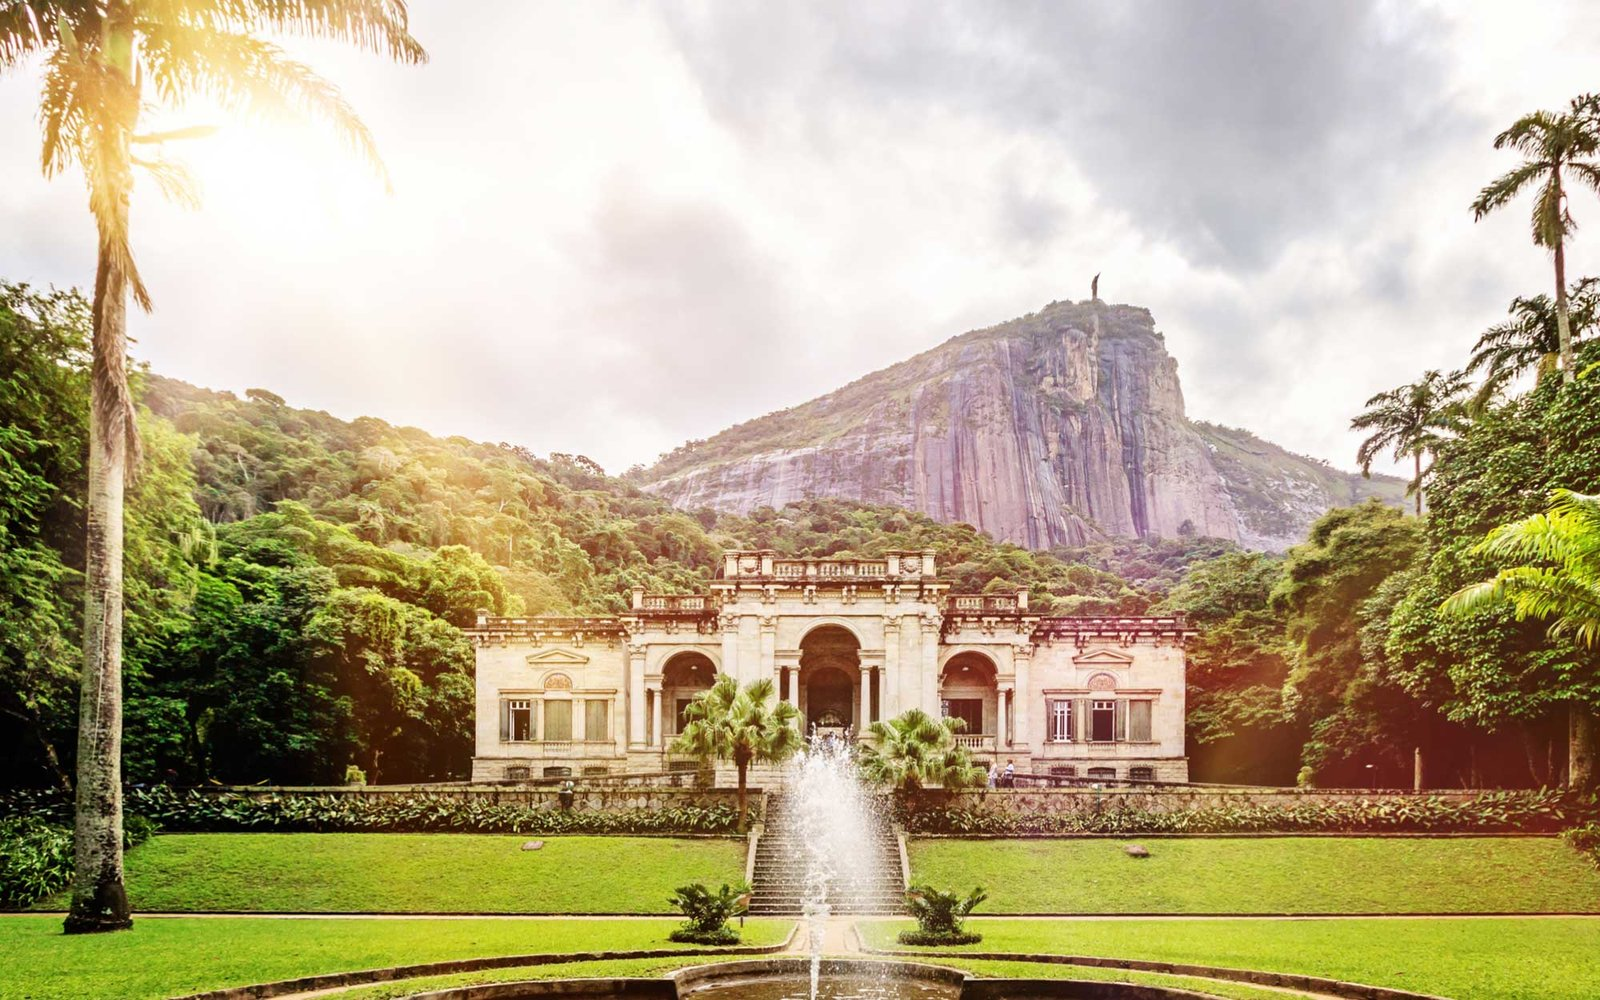 The Parque Lage with mansion